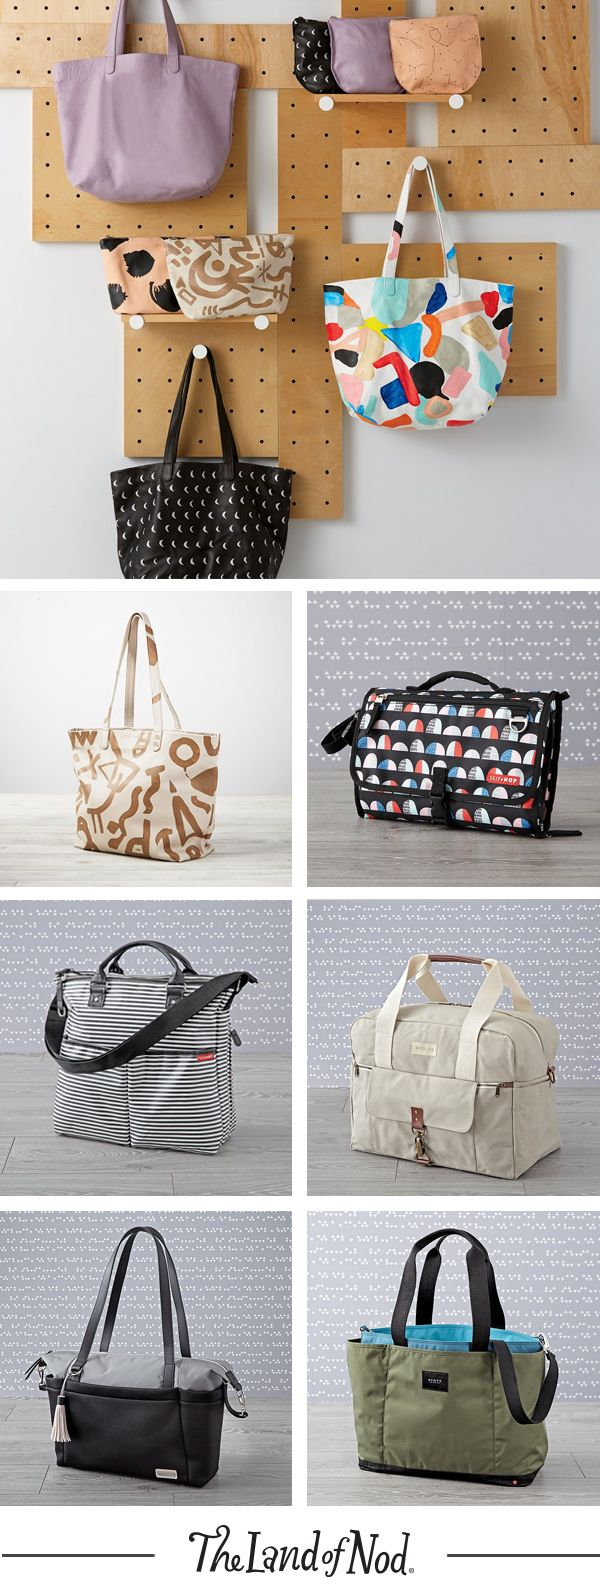 Contain the mayhem of baby essentials on the go with a stylish and ...